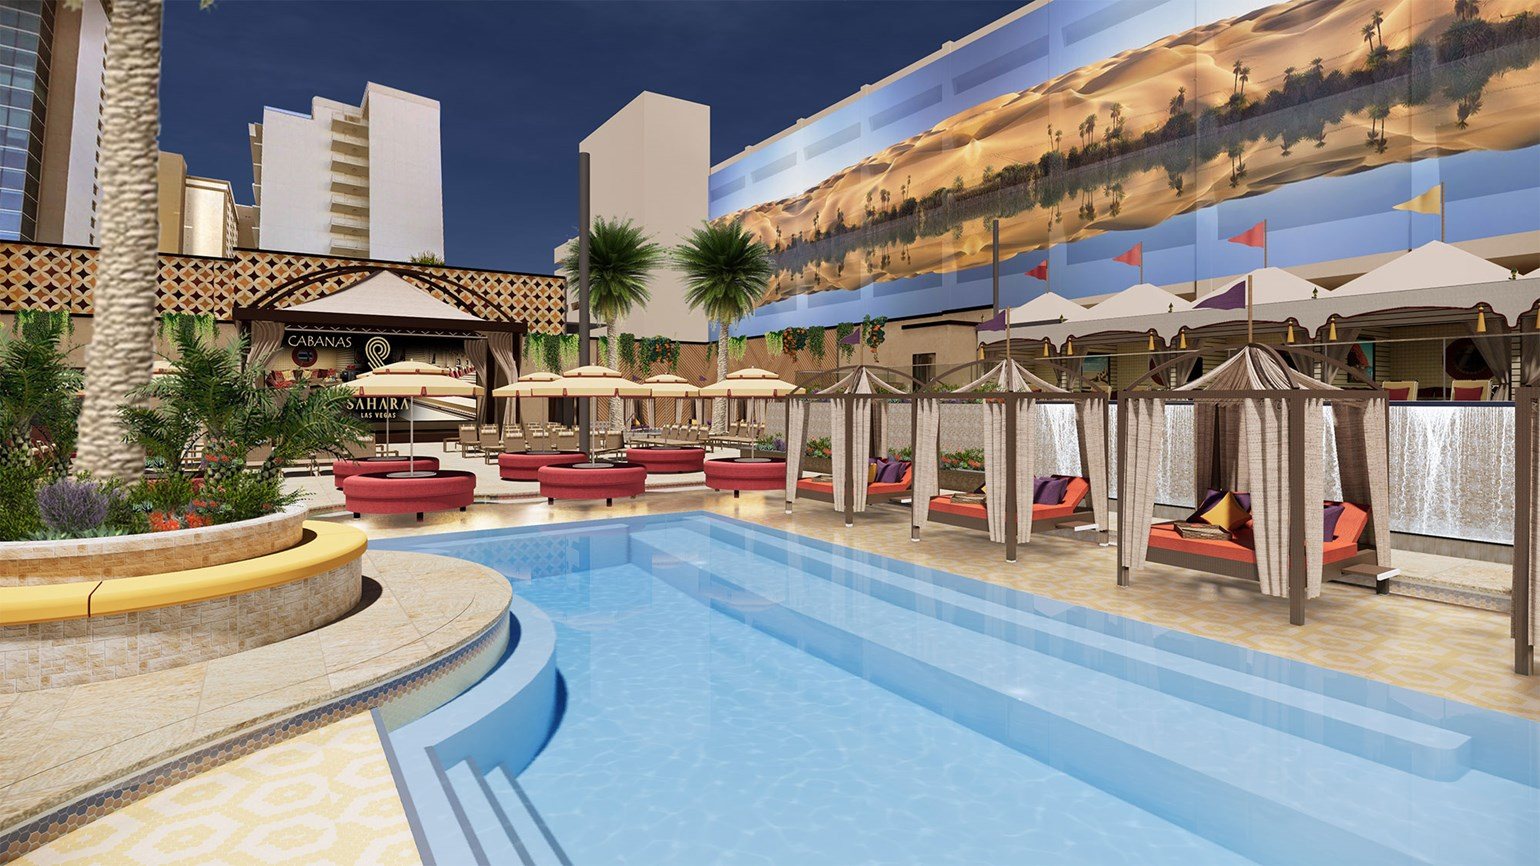 Big changes coming to Sahara Las Vegas this summer